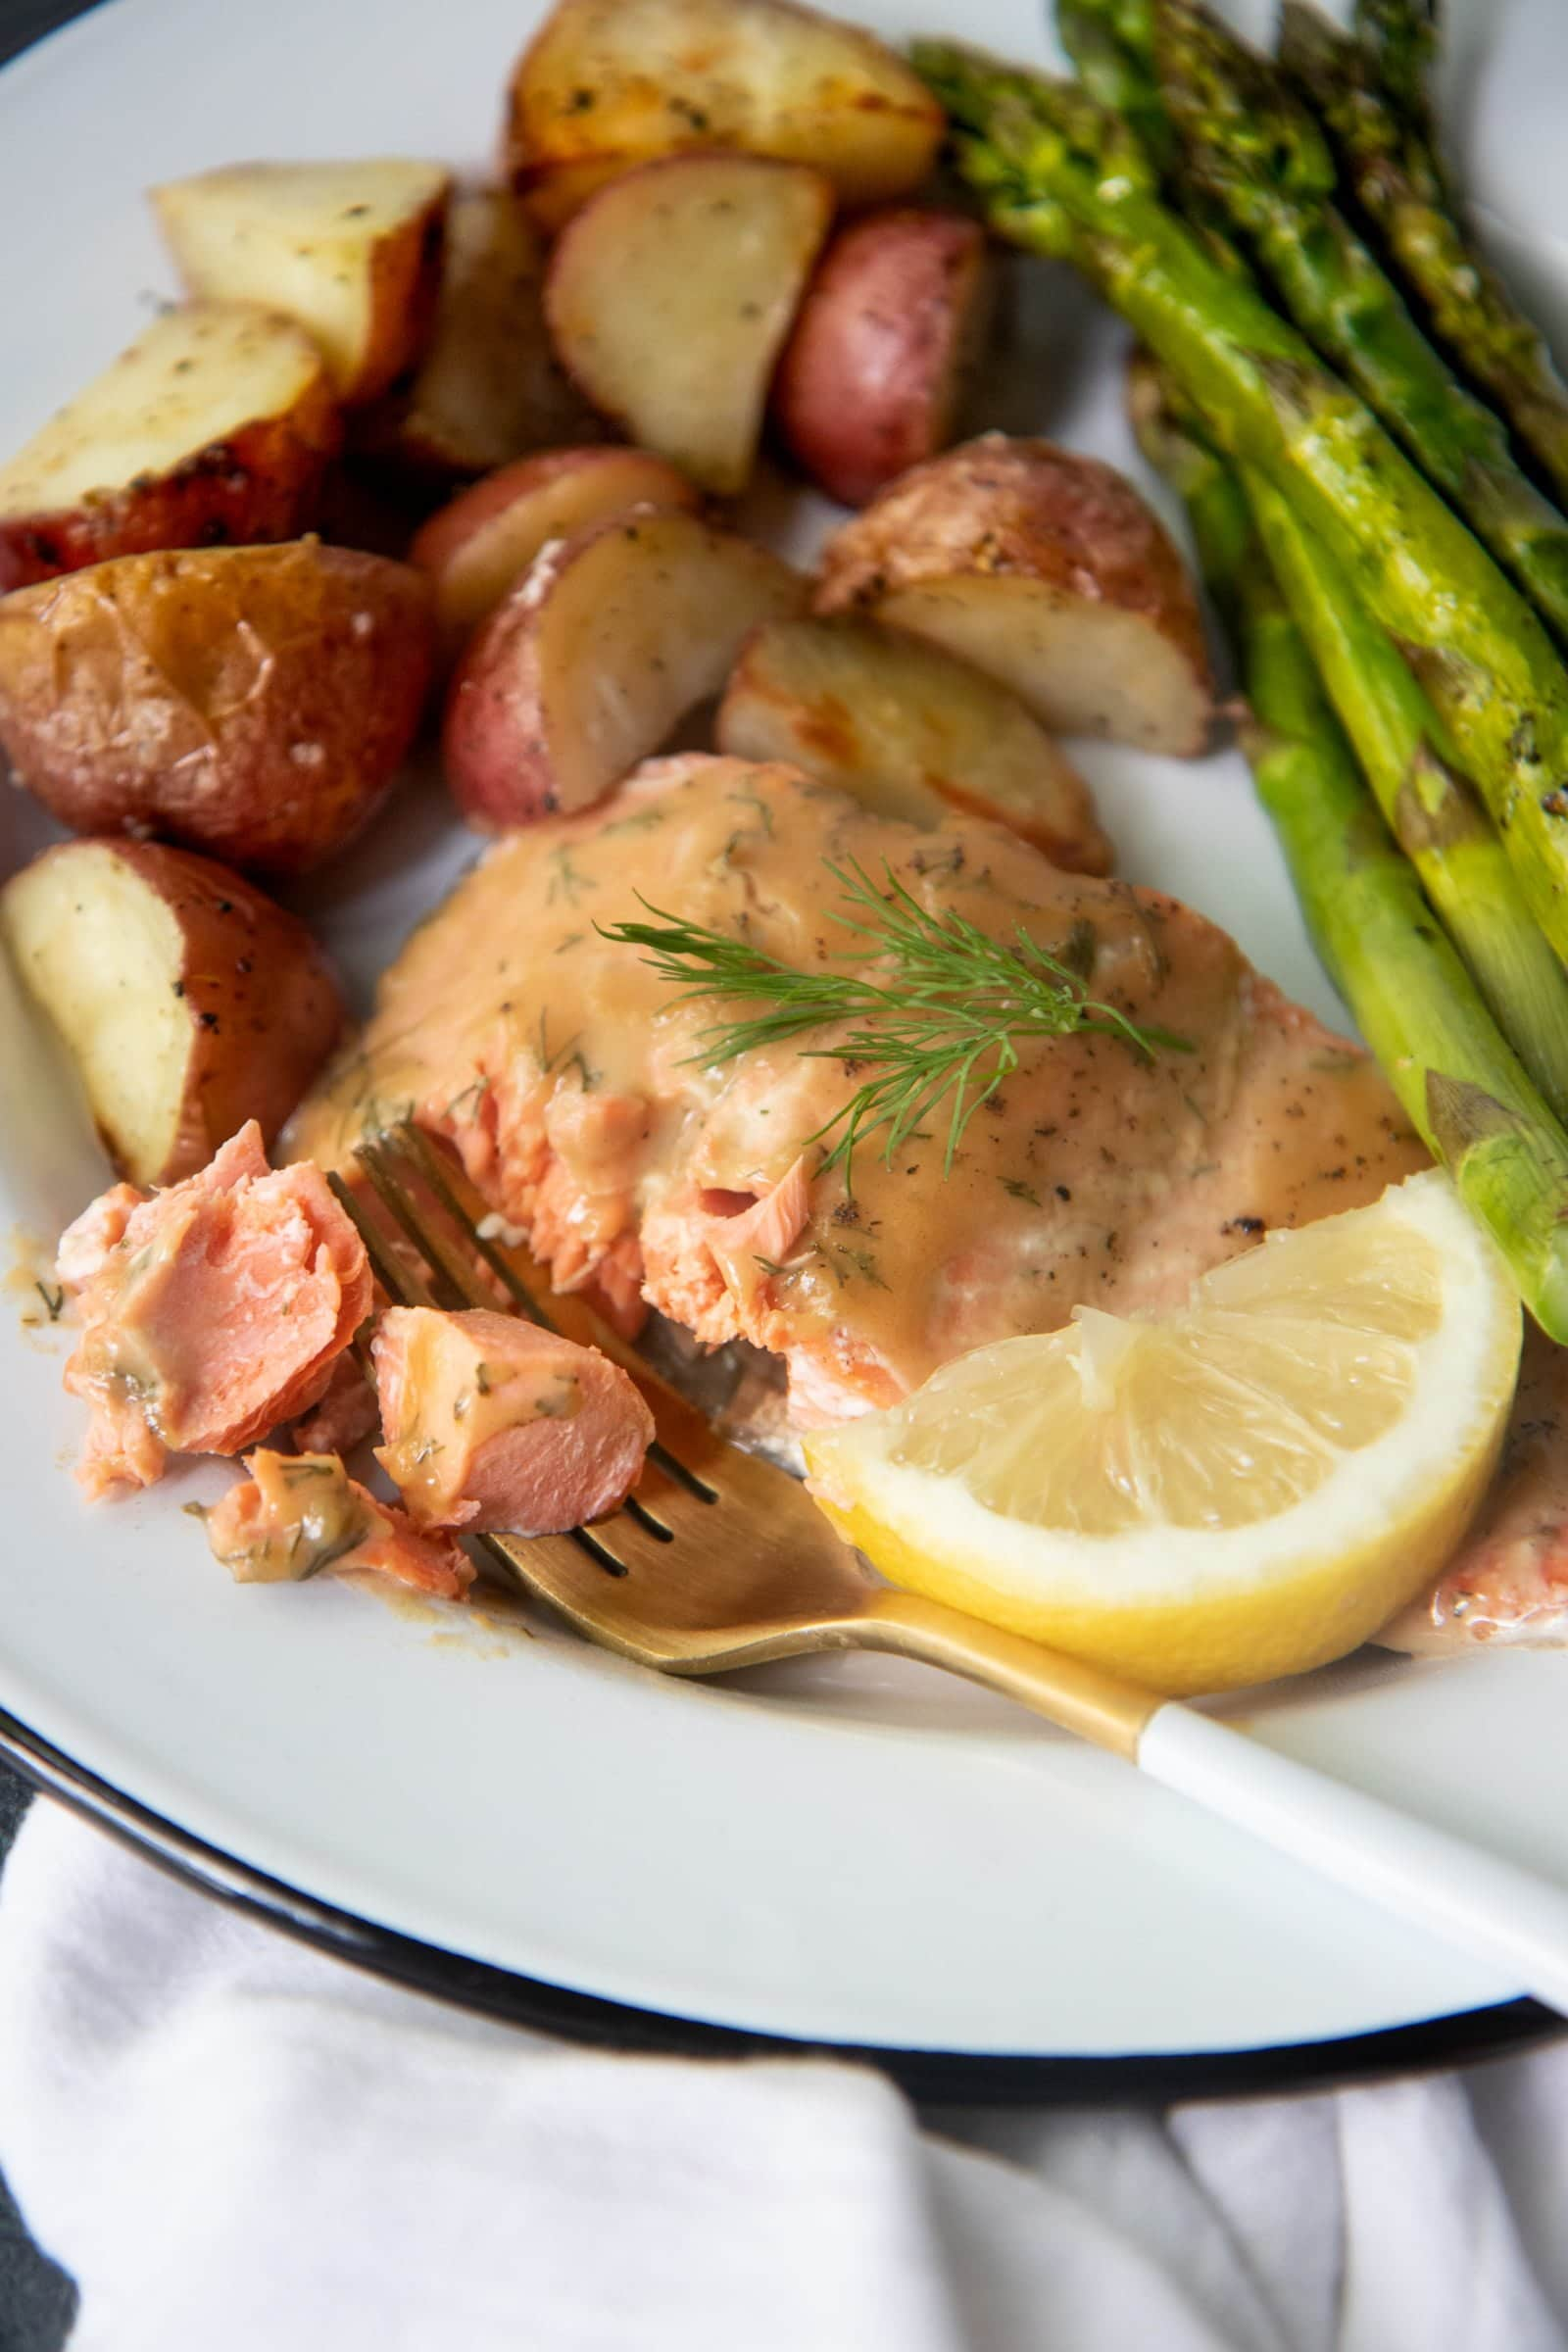 Mustard Maple Glazed Salmon, roasted asparagus, and roasted potatoes on a white plate with a white and gold fork.